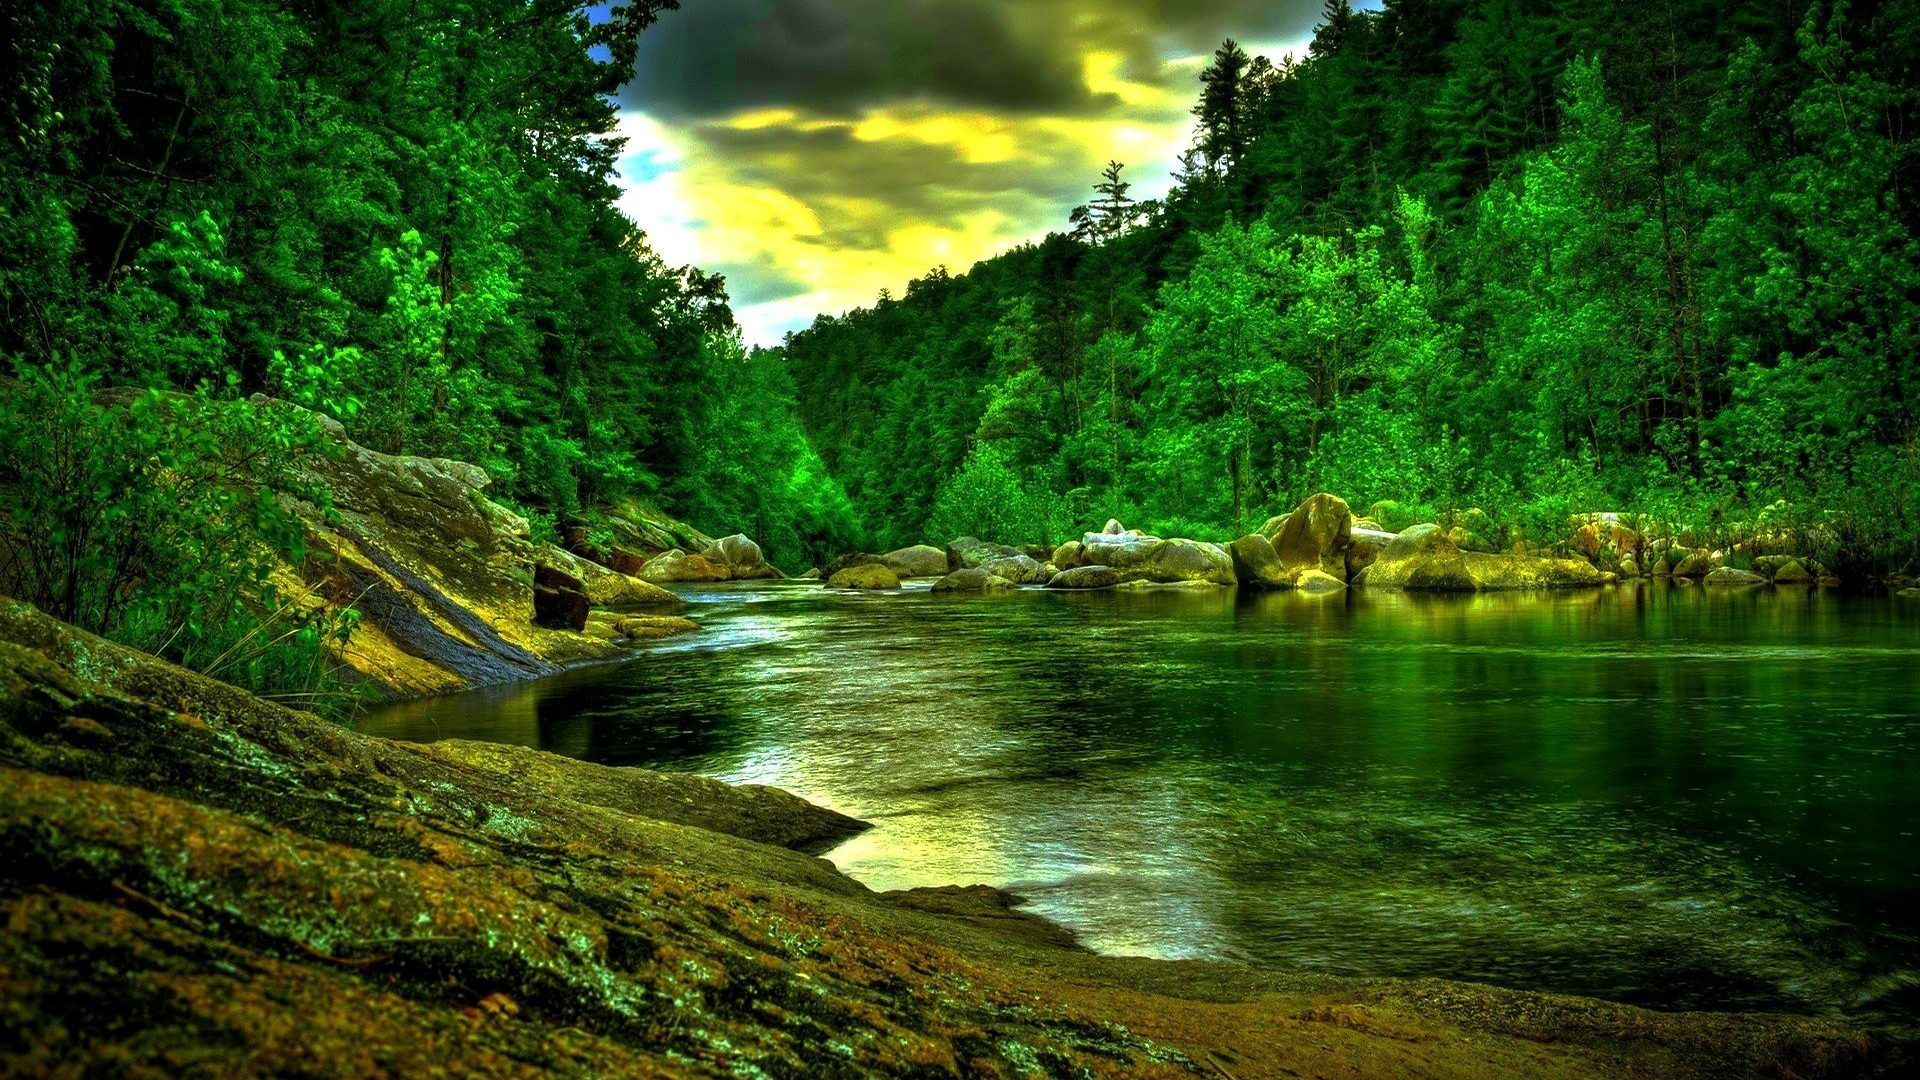 nature-amazon-pictures-wallpapers-desktop wallpaper hd full screen nature